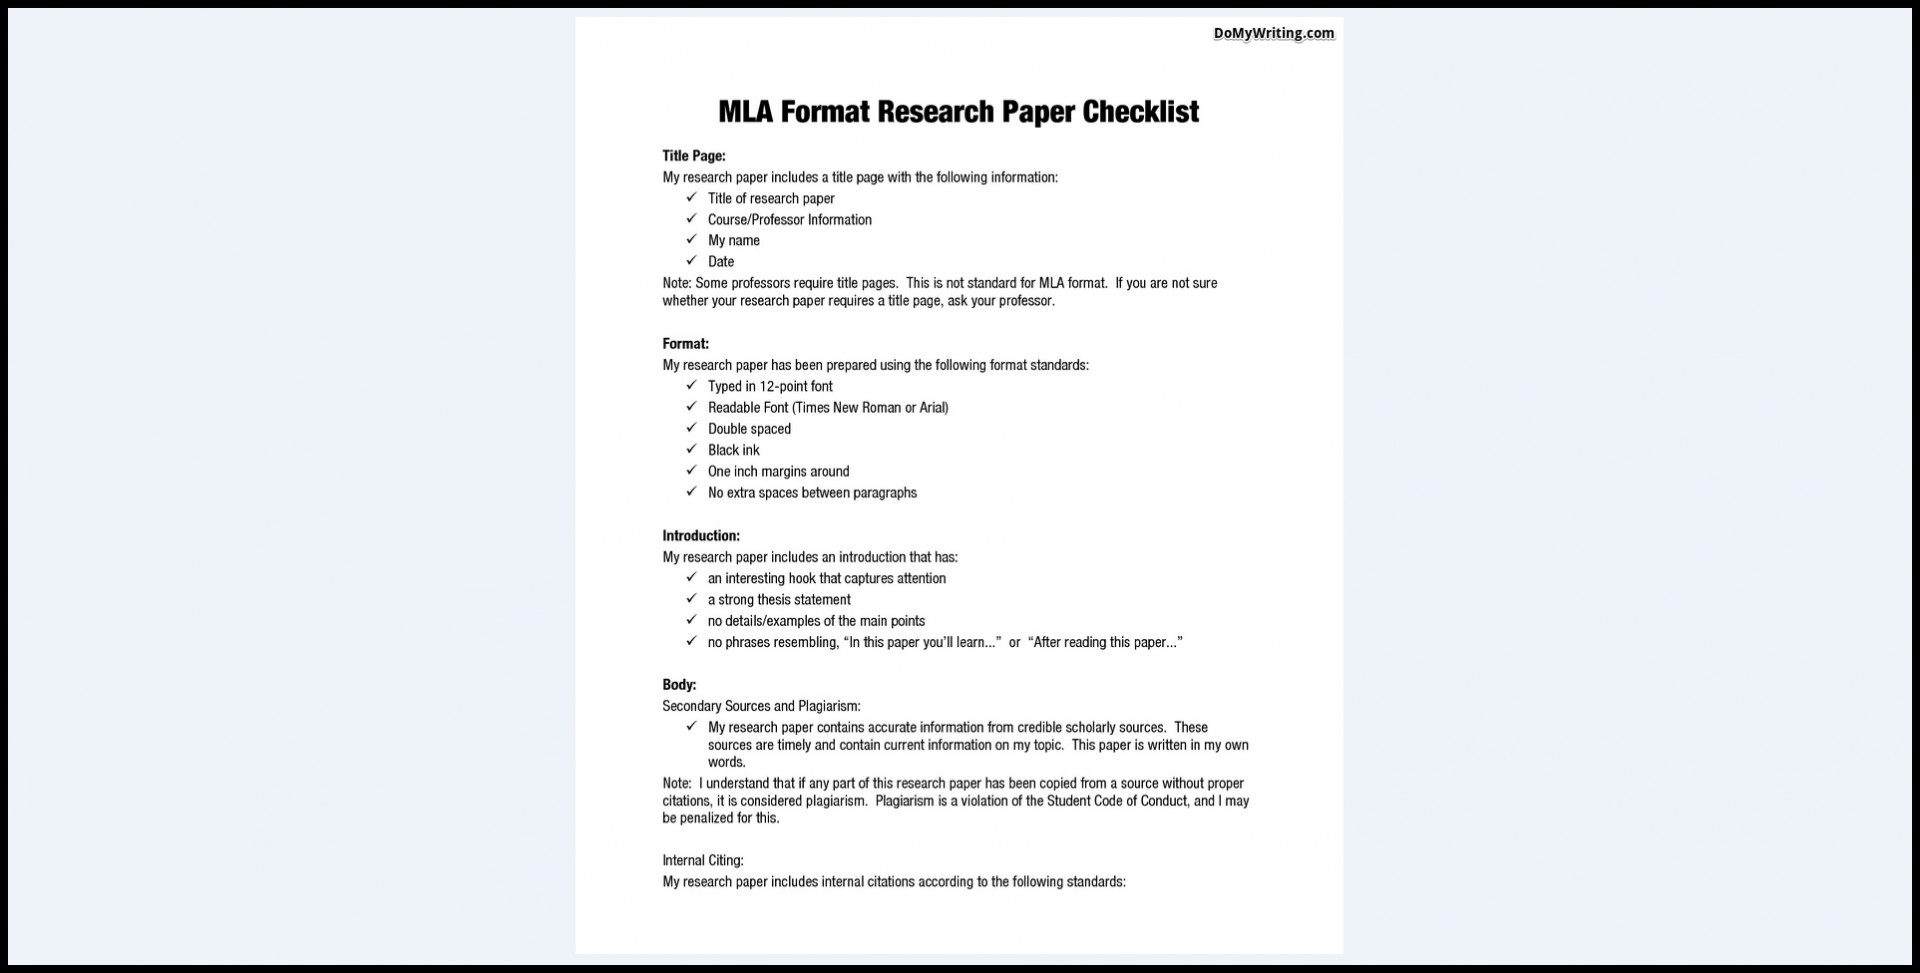 007 Mla Format Paper Research In Text Wondrous Citations Sample Citation 1920